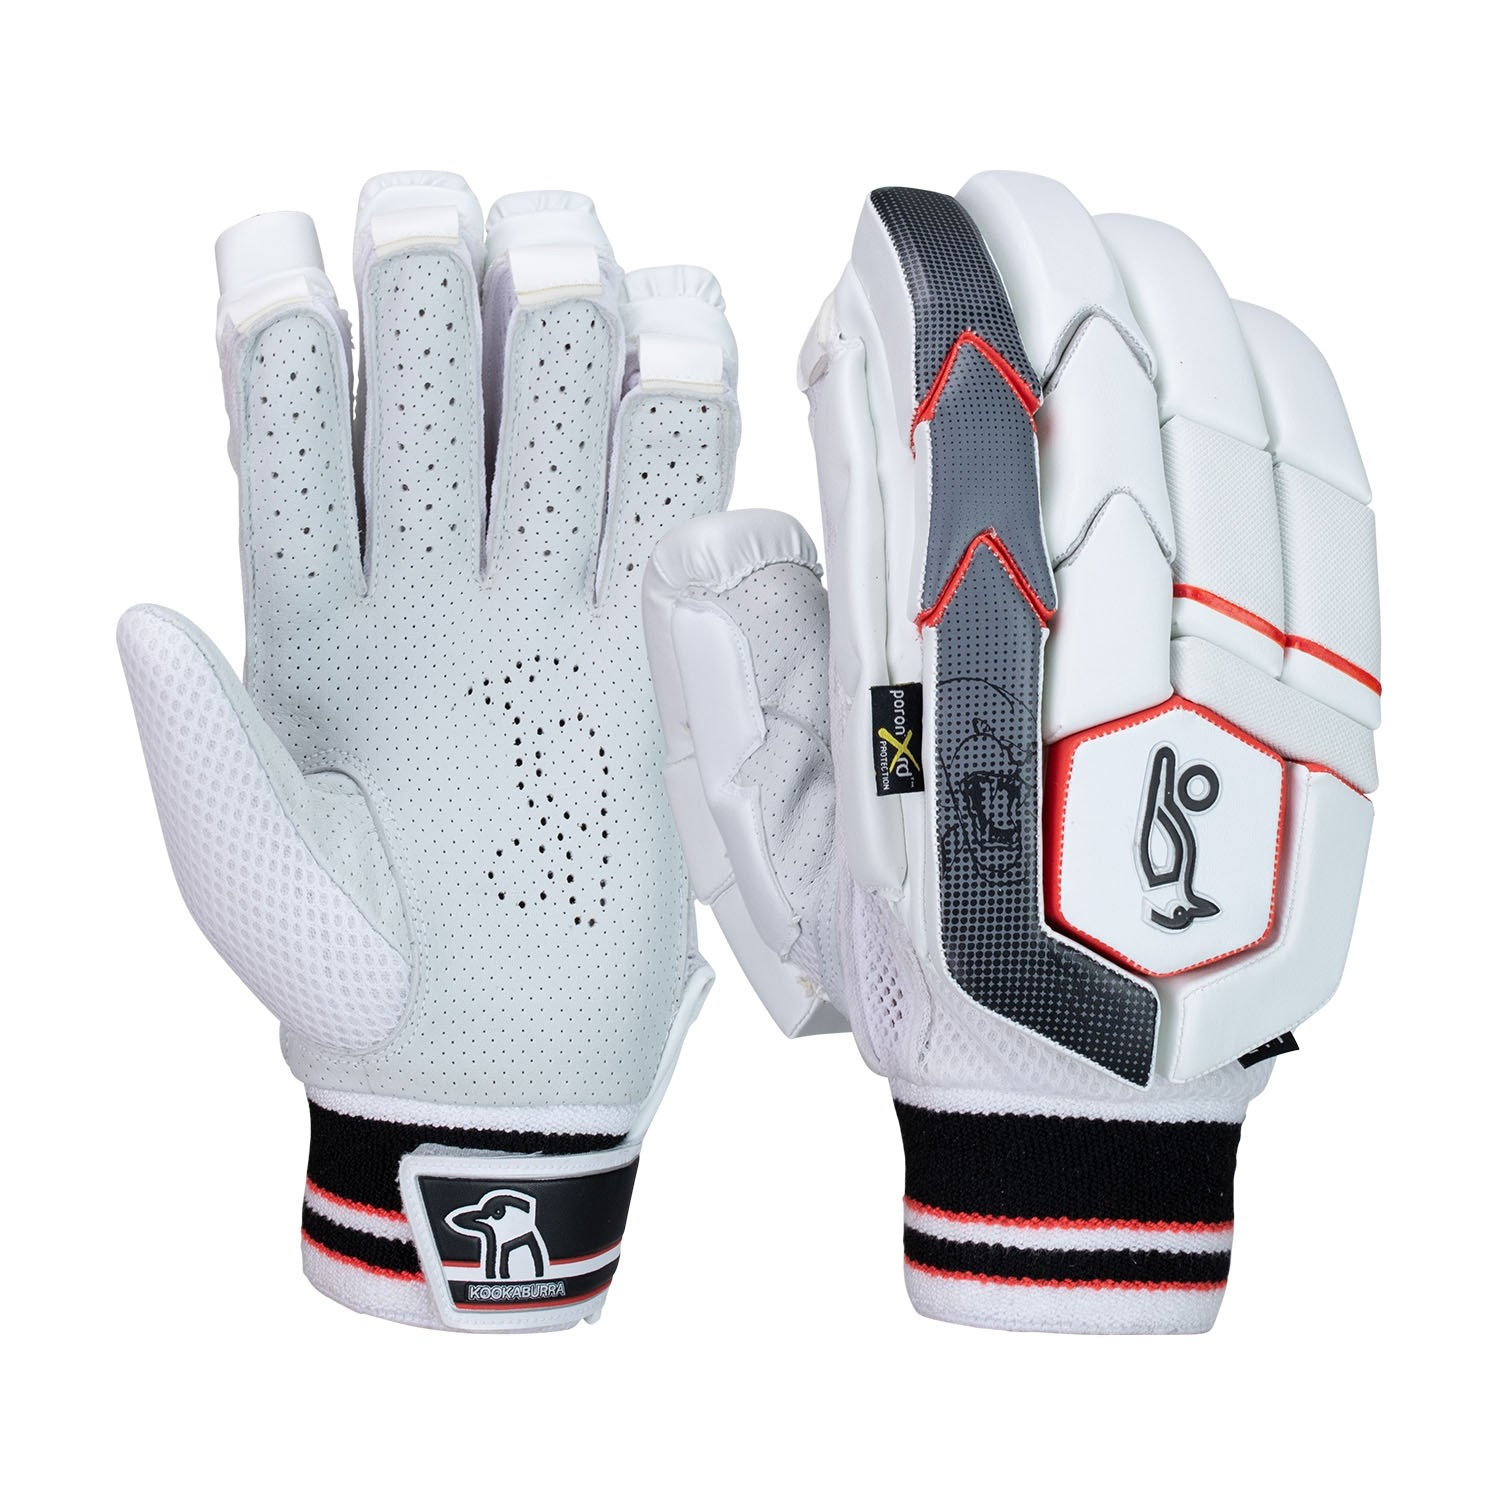 2021 Kookaburra Beast 2.1 Batting Gloves